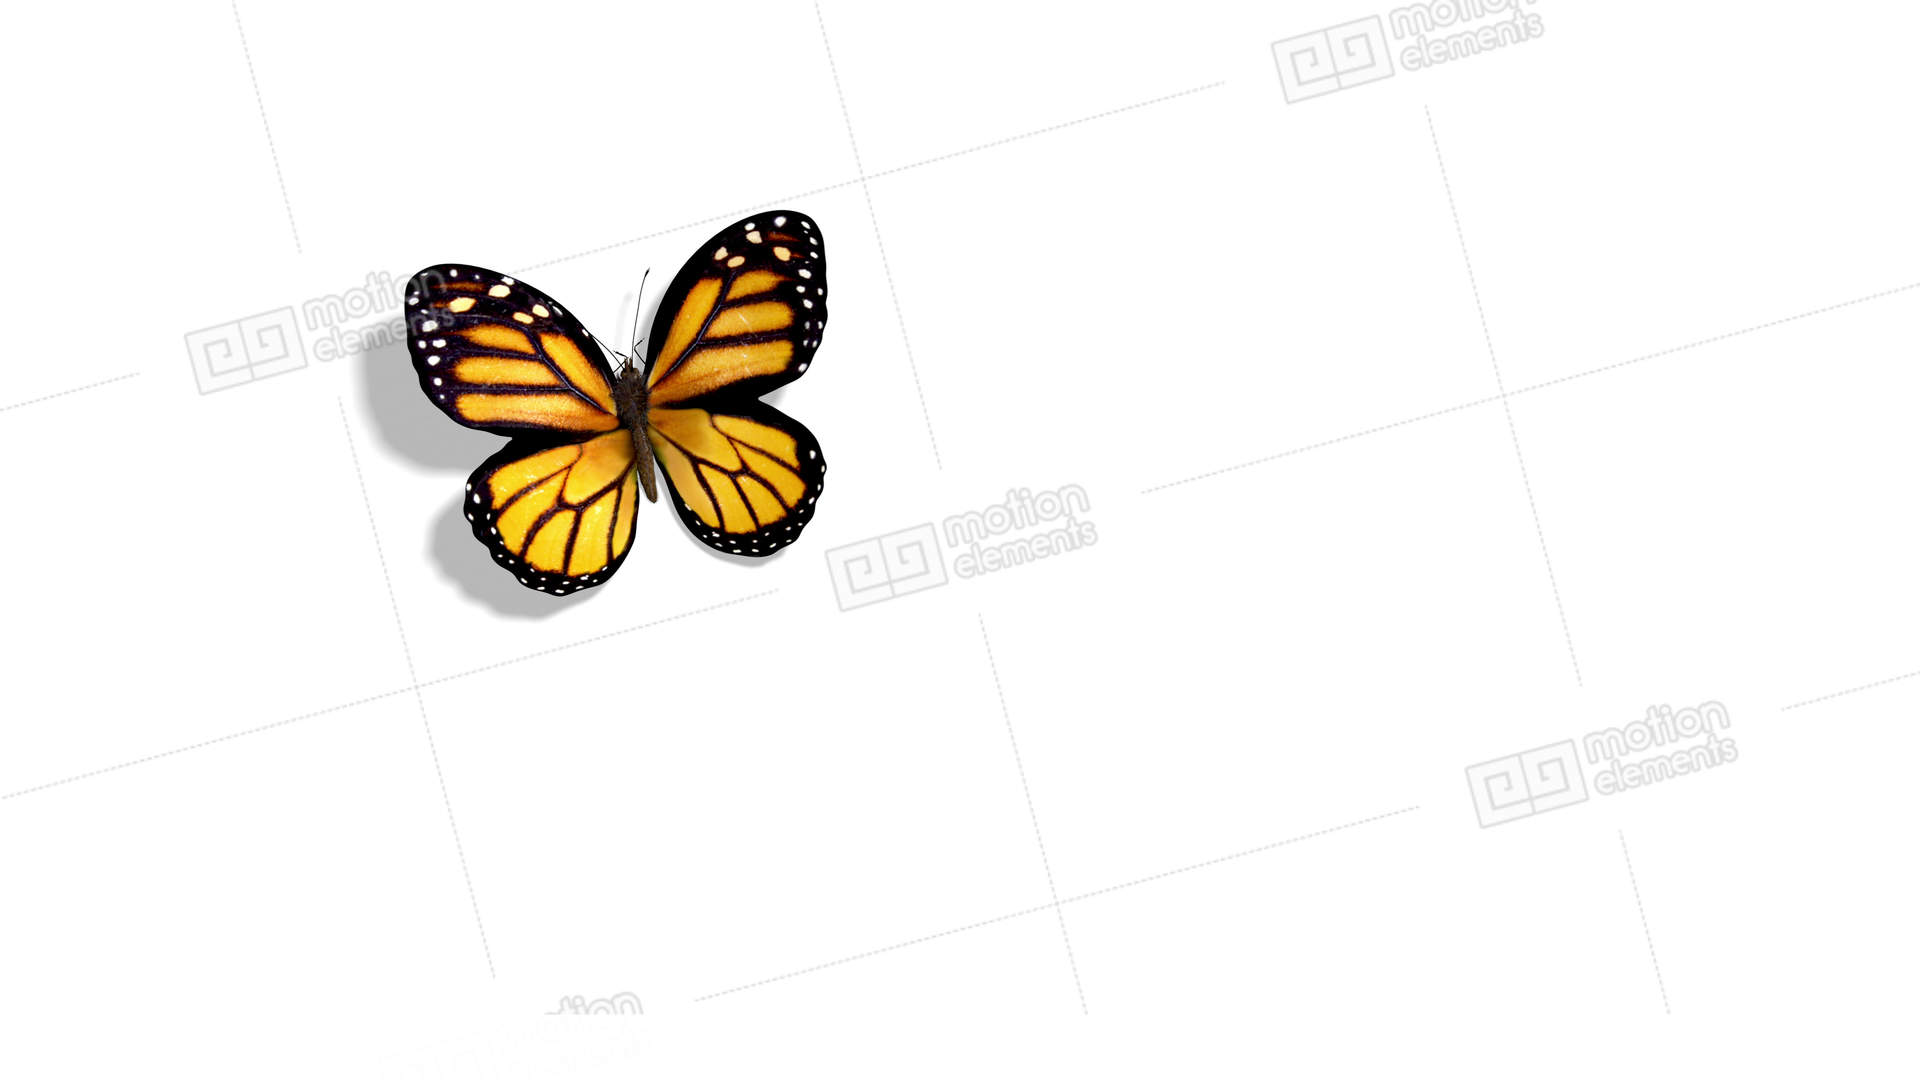 Images of Animated Orange Butterflies - #rock-cafe